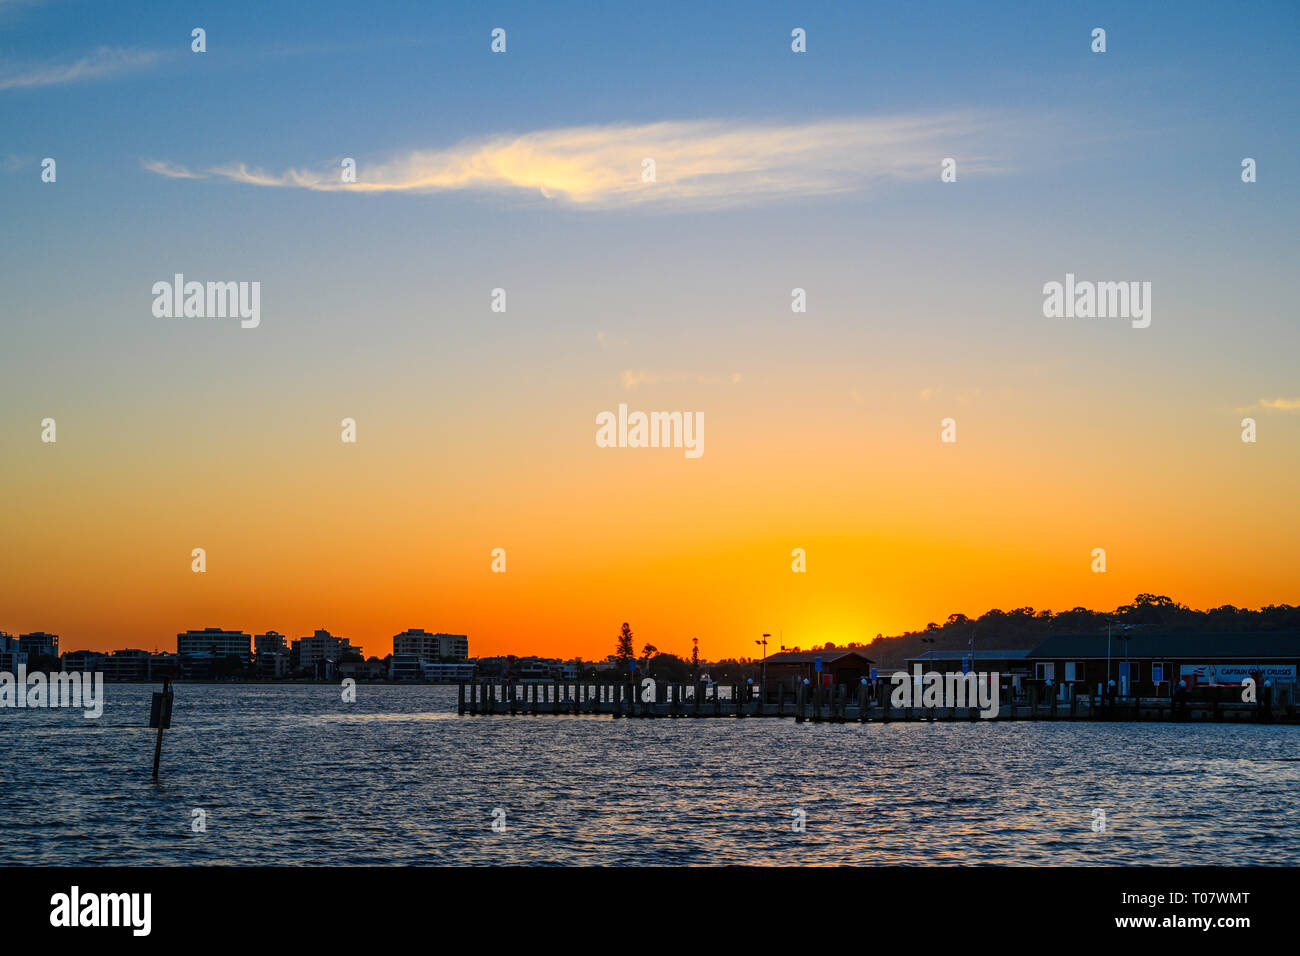 Sunset over the Swan River, Perth, Western Australia, seen from Riverside walk. Stock Photo